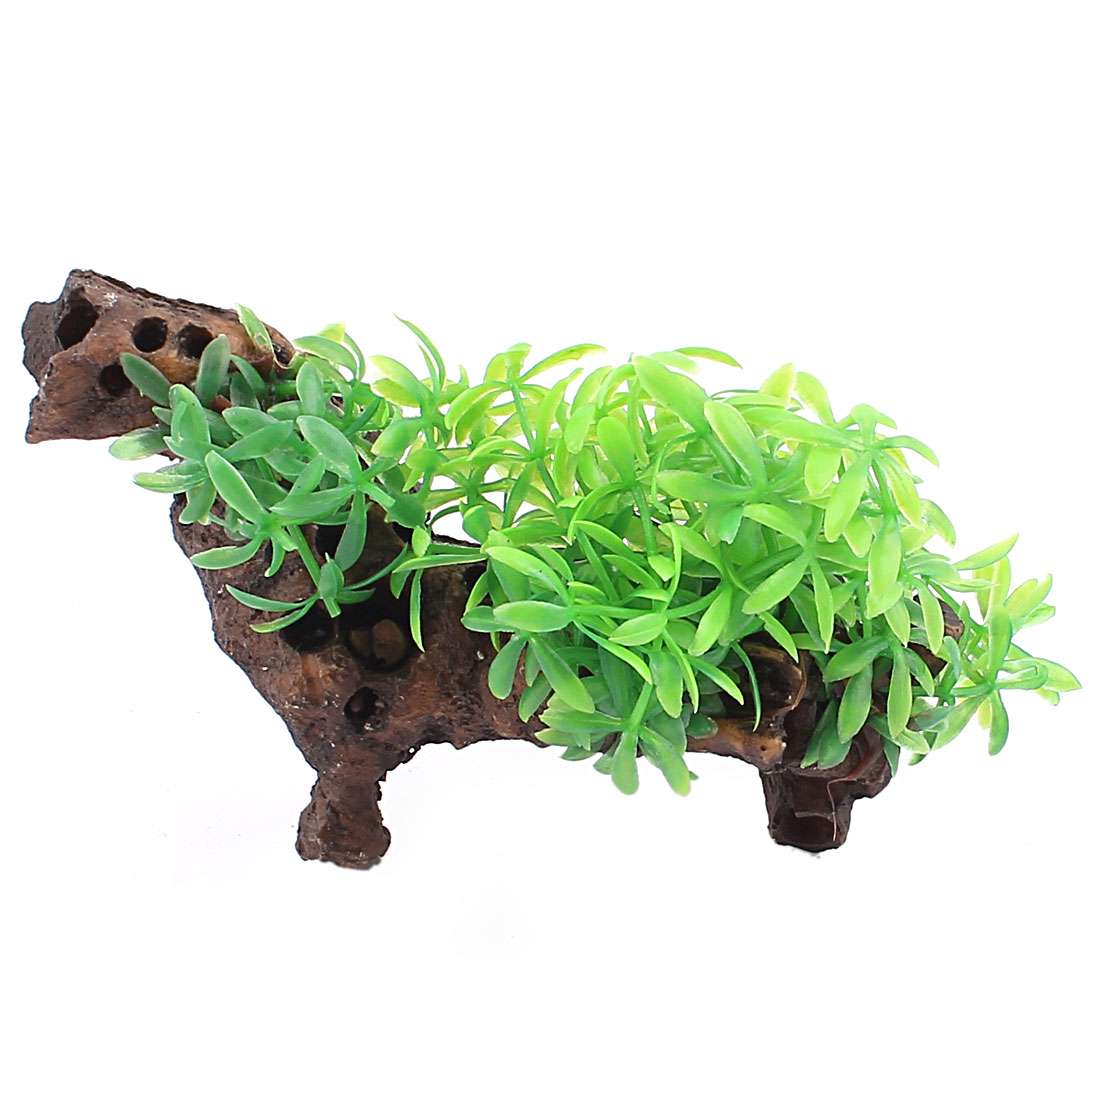 Green Brown Plastic Emulational Aquarium Plant Aquatic Grass Decor for Fishbowl Fish Tank